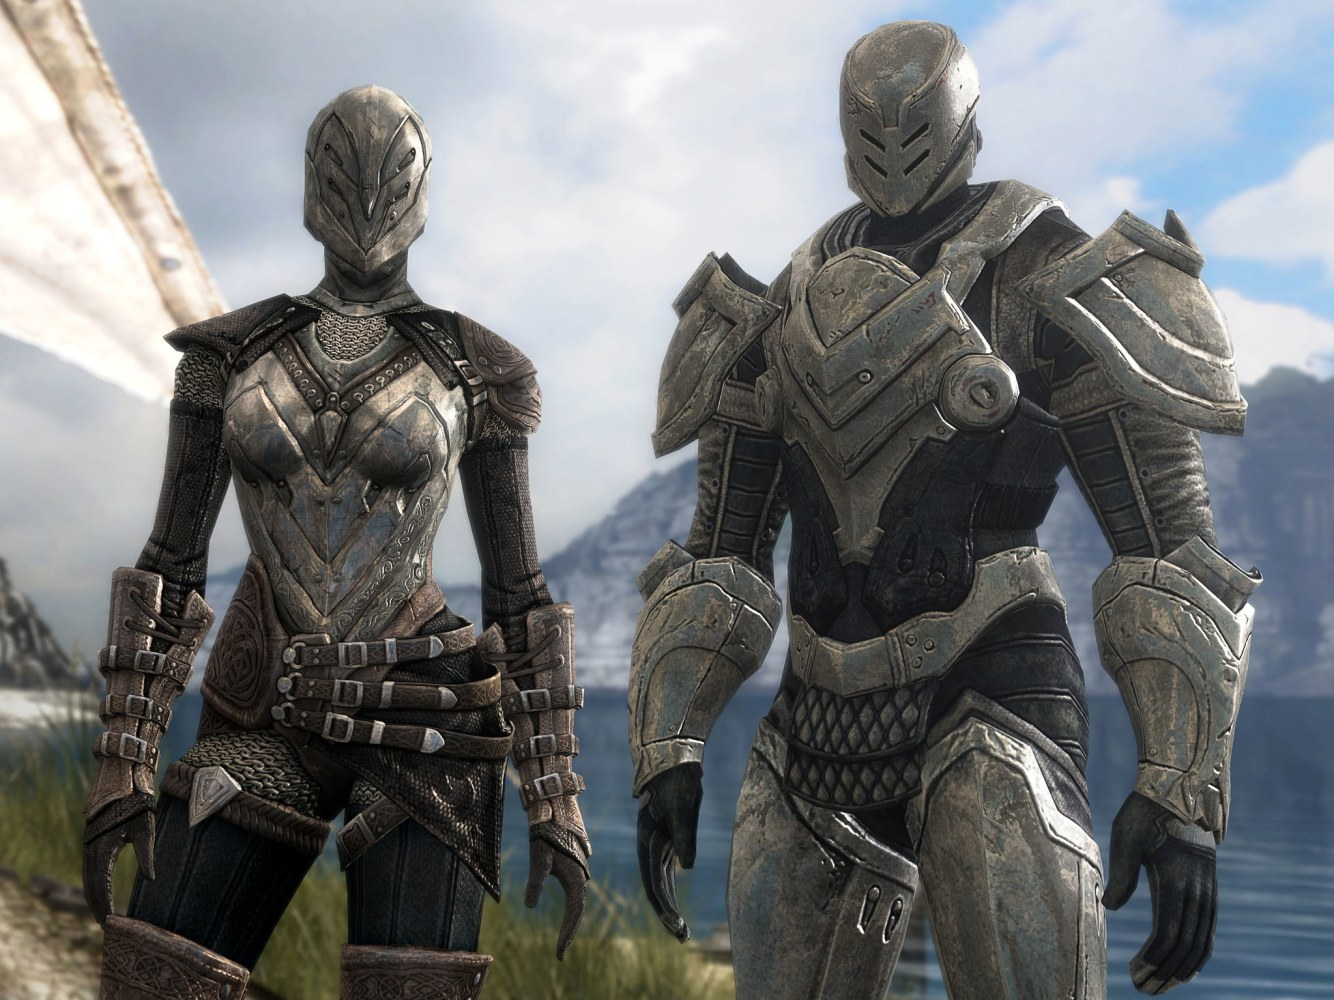 Infinity Blade 3' to launch with iPhone 5S - NBC News